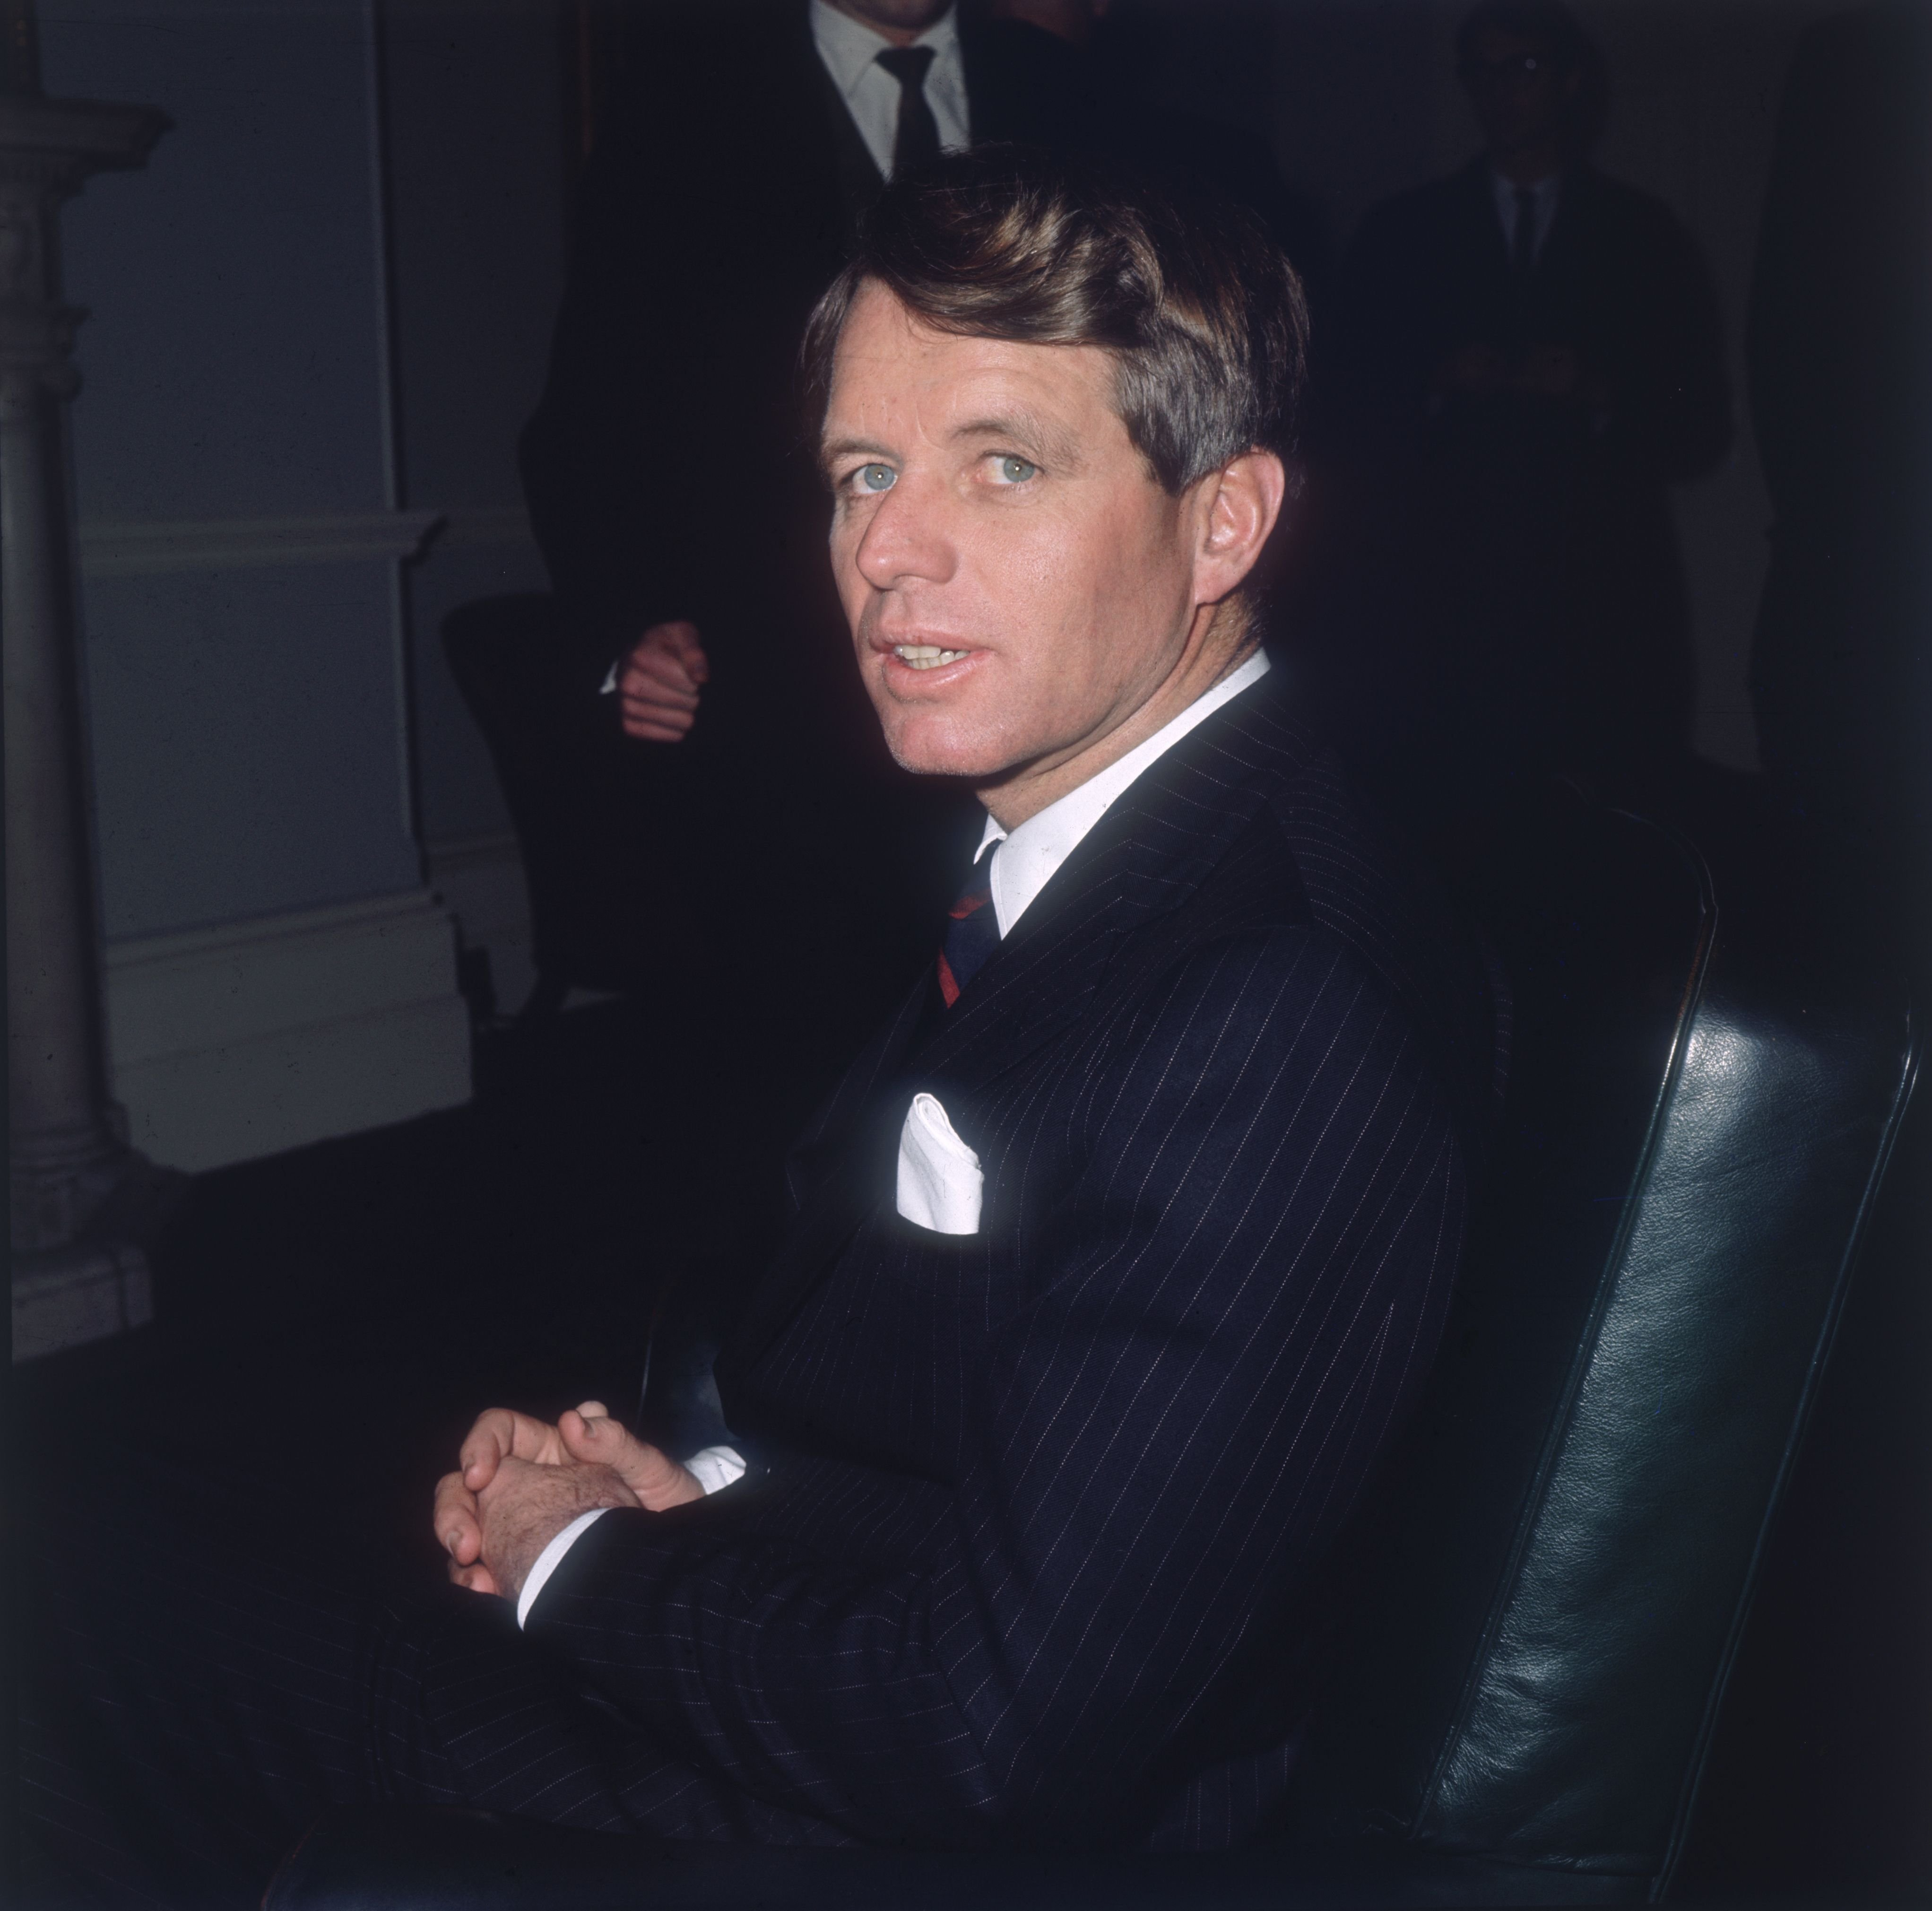 Senator Robert Kennedy (1925 - 1968) during a visit to London, May 1967. | Photo: Getty Images